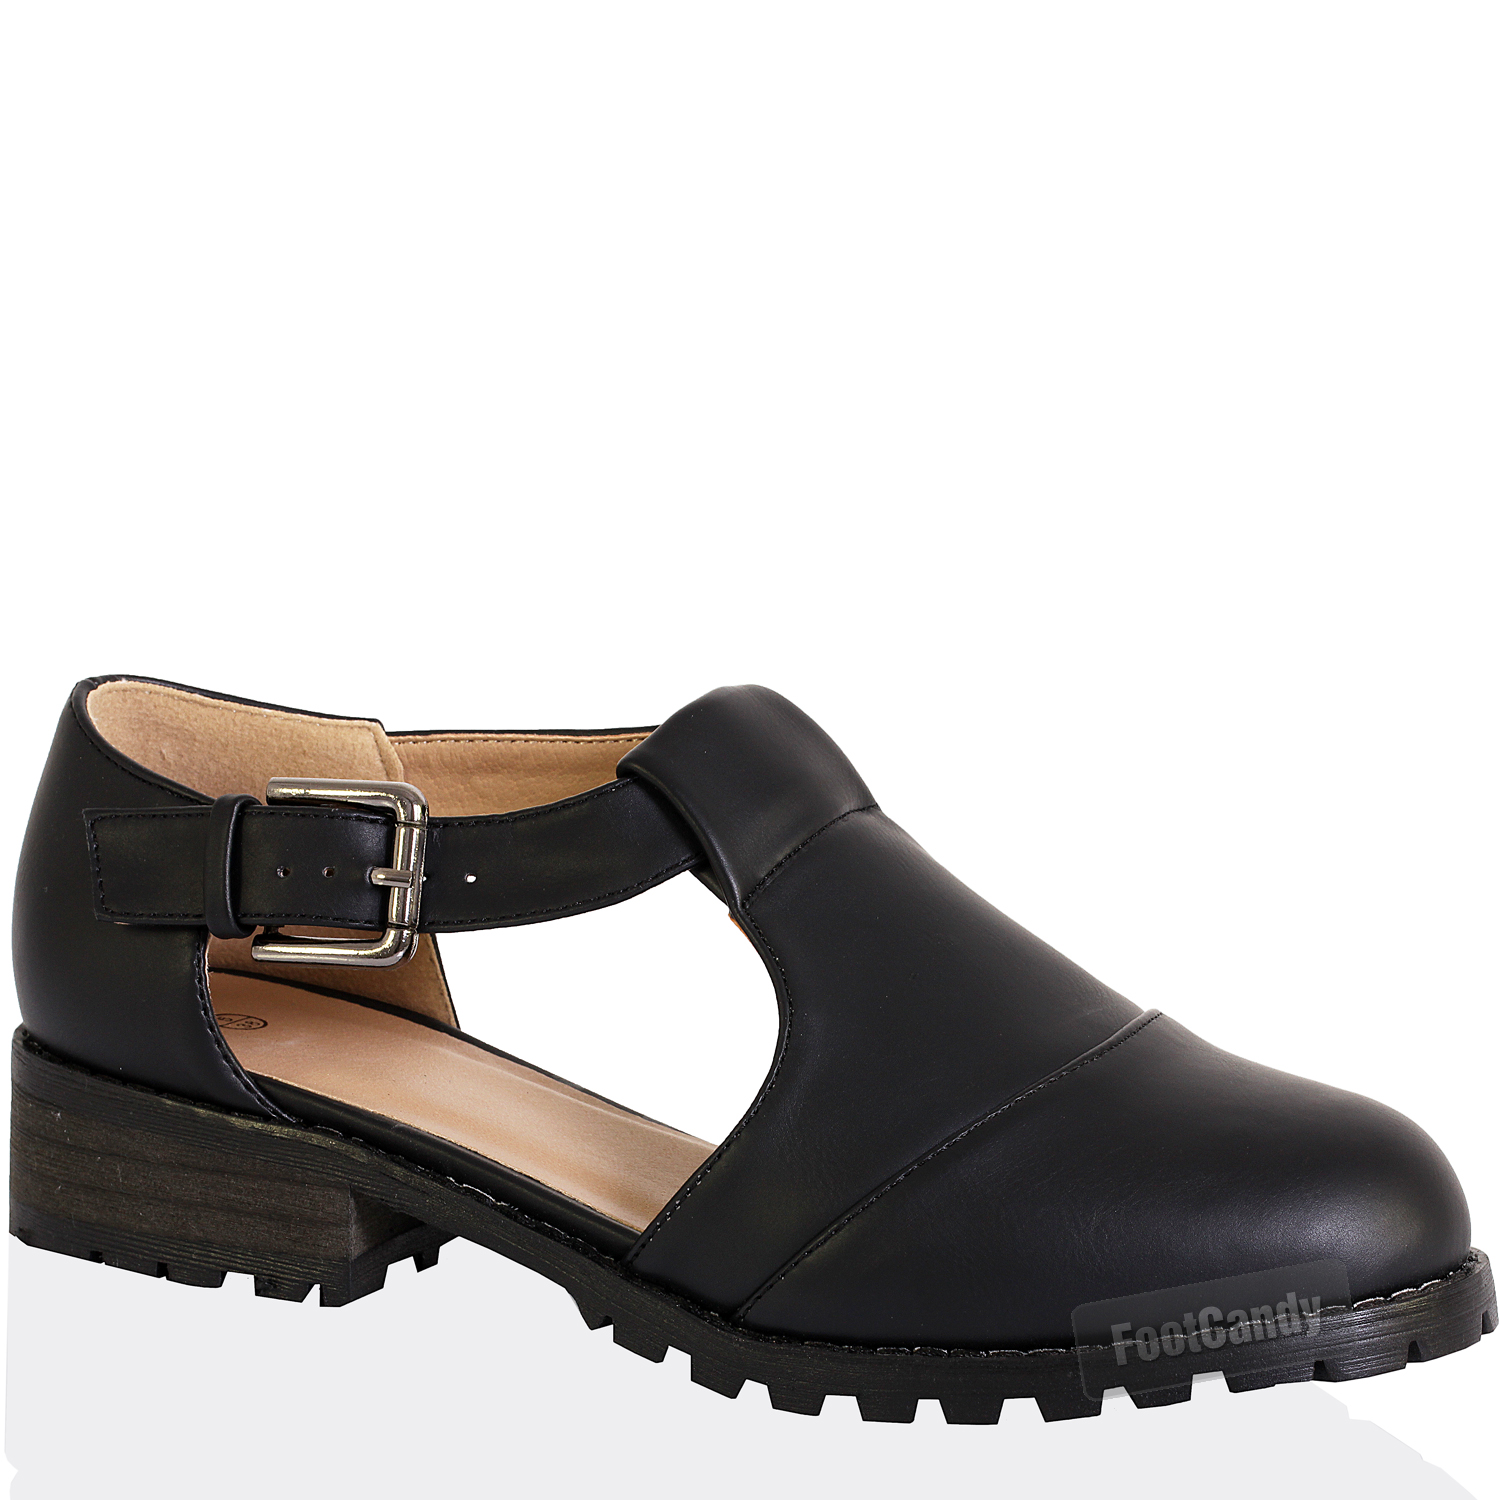 WOMENS-LADIES-MARY-JANE-CUT-OUT-CHUNKY-CLEATED-LOW-HEEL-ANKLE-STRAP-BUCKLE-SHOES